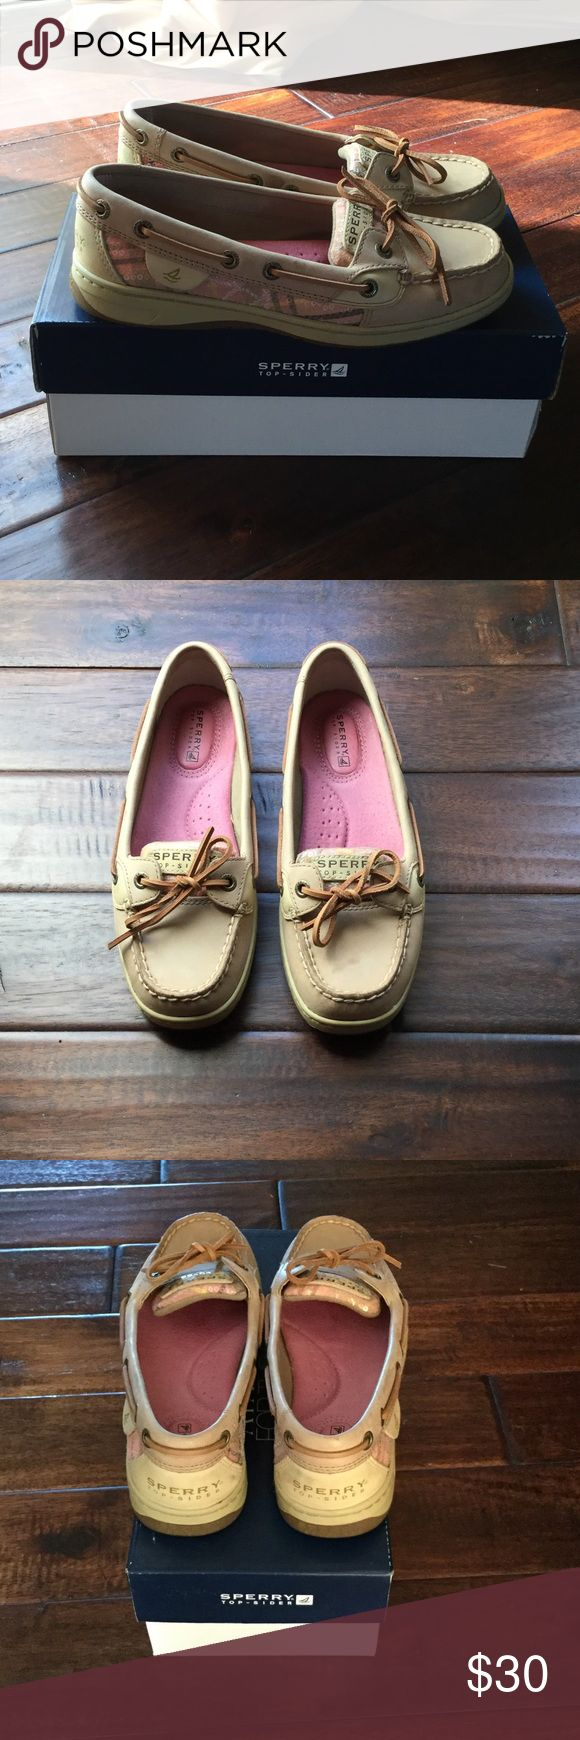 ❗️FINAL❗️Women's Sperry boat shoes 💥FINAL SALE💥 These are super comfy and cute! The specific style is Angelfish Linen/Coral. They do have a couple of scuffs that you can see in the pics, but only noticeable up close. Sperry Top-Sider Shoes Flats & Loafers